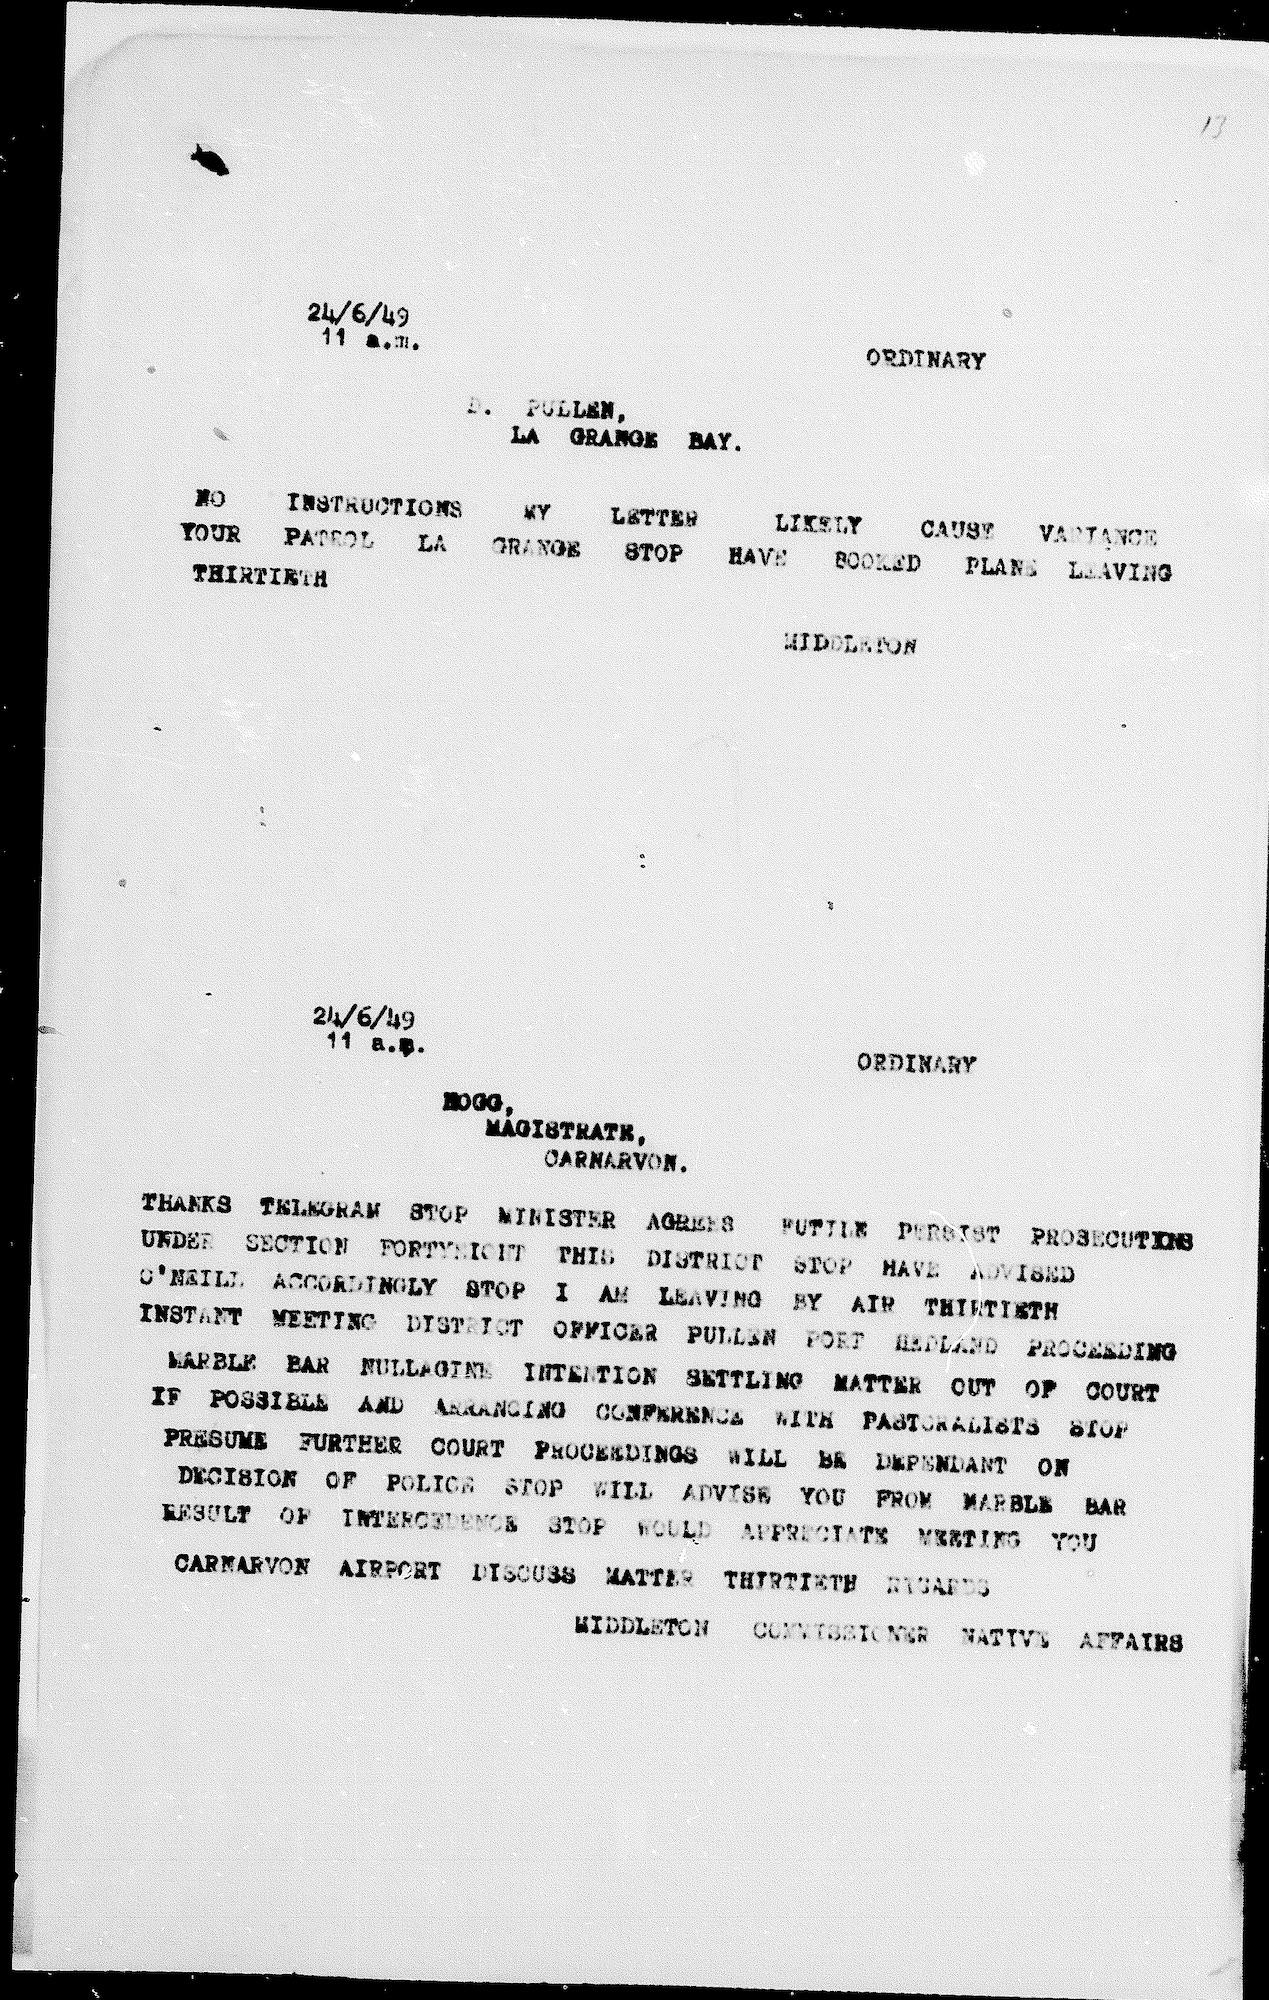 Stan Middleton to Magistrate Keith Hogg, 24 June 1949